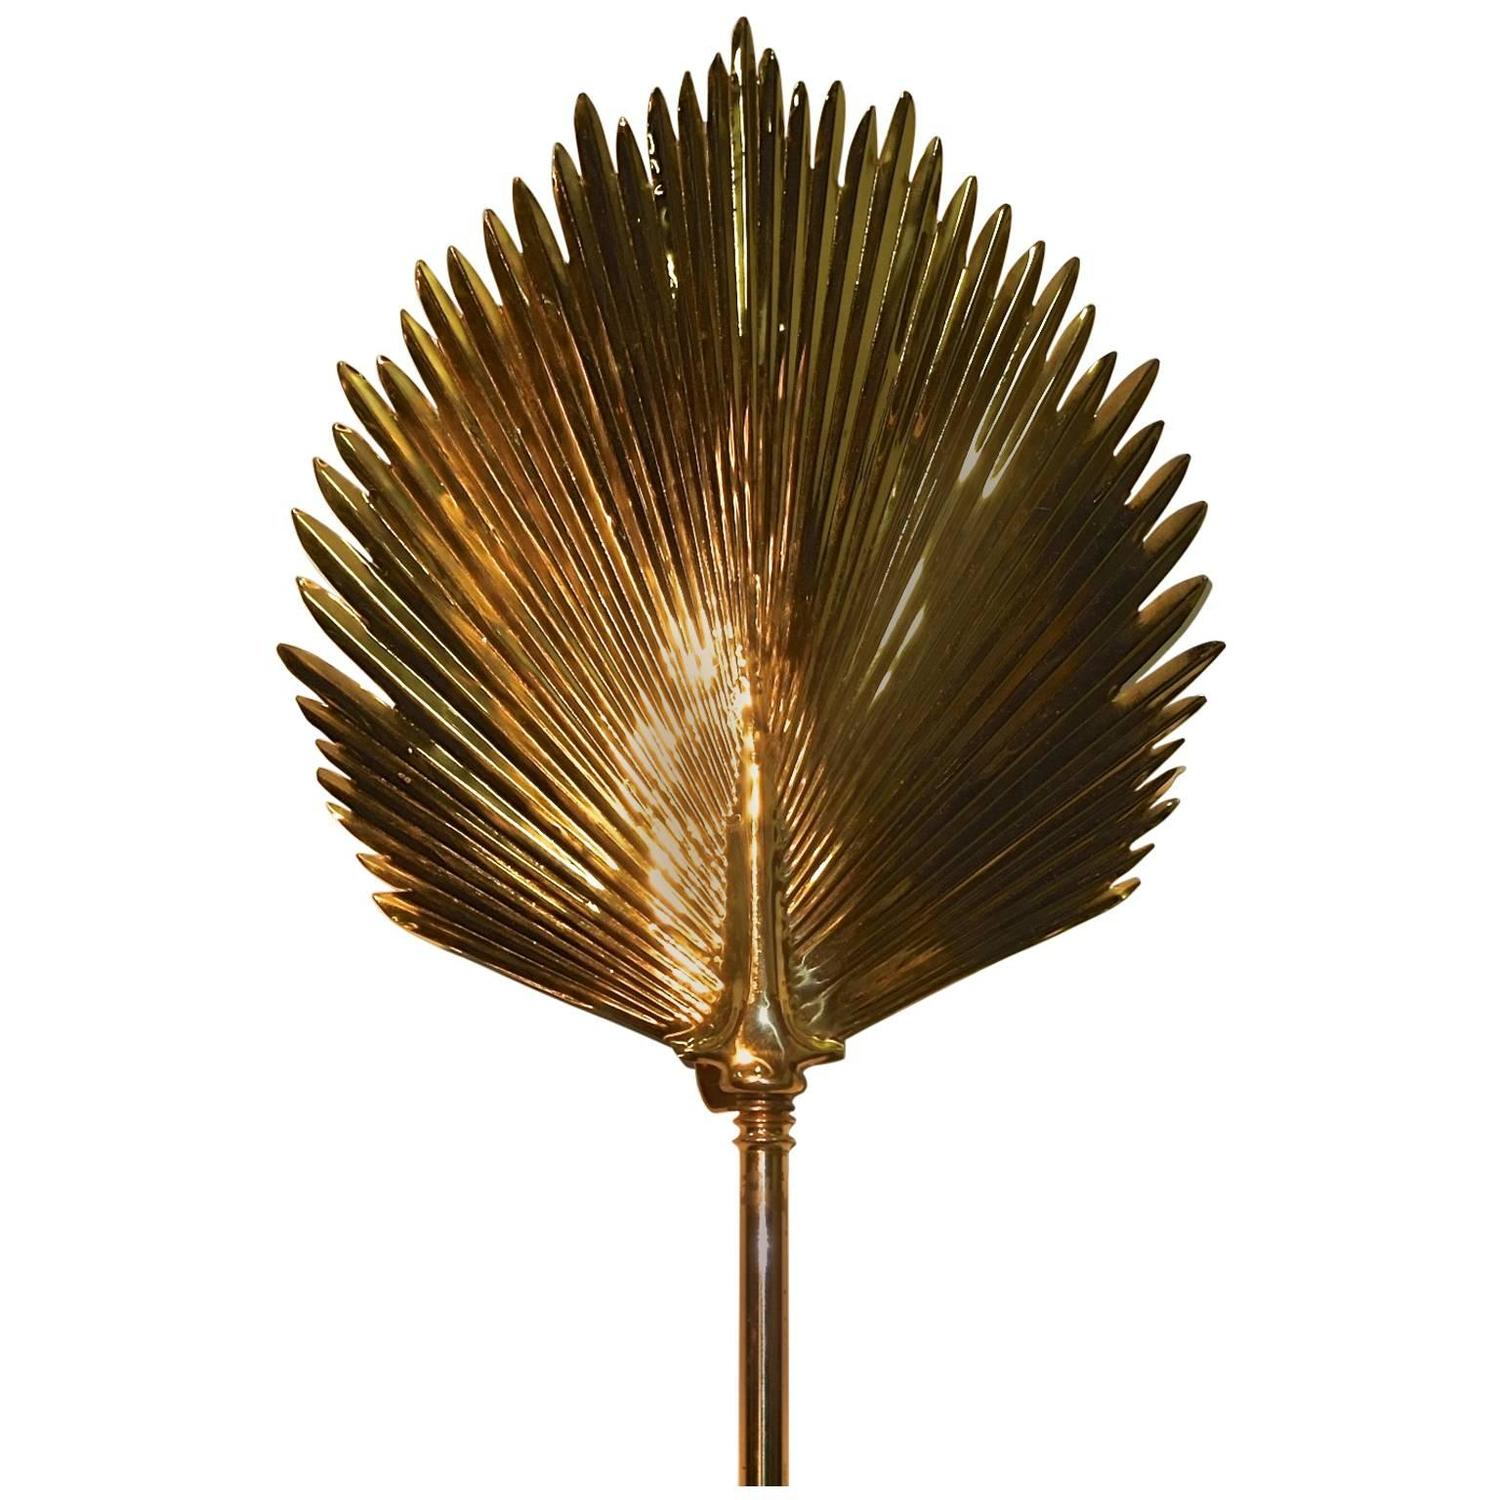 Wall mounted brass palm frond lamp in the style of tommaso barbi for wall mounted brass palm frond lamp in the style of tommaso barbi for sale at 1stdibs aloadofball Images